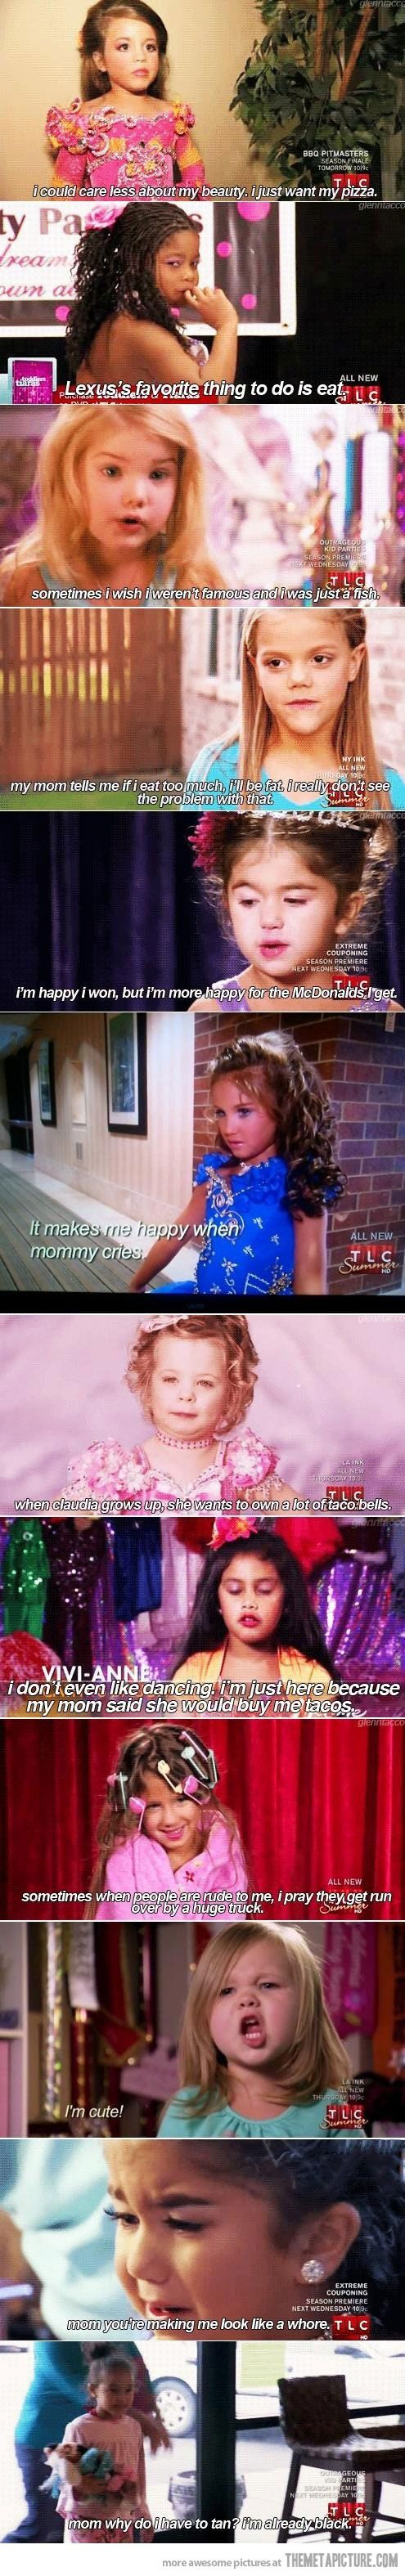 Toddler 'n Tiaras: behind the scenes: Little Girls, Quote, Pageants Girls, Tacos Belle, Dance Moms, Kids, Toddlers, So Funny, Tiaras